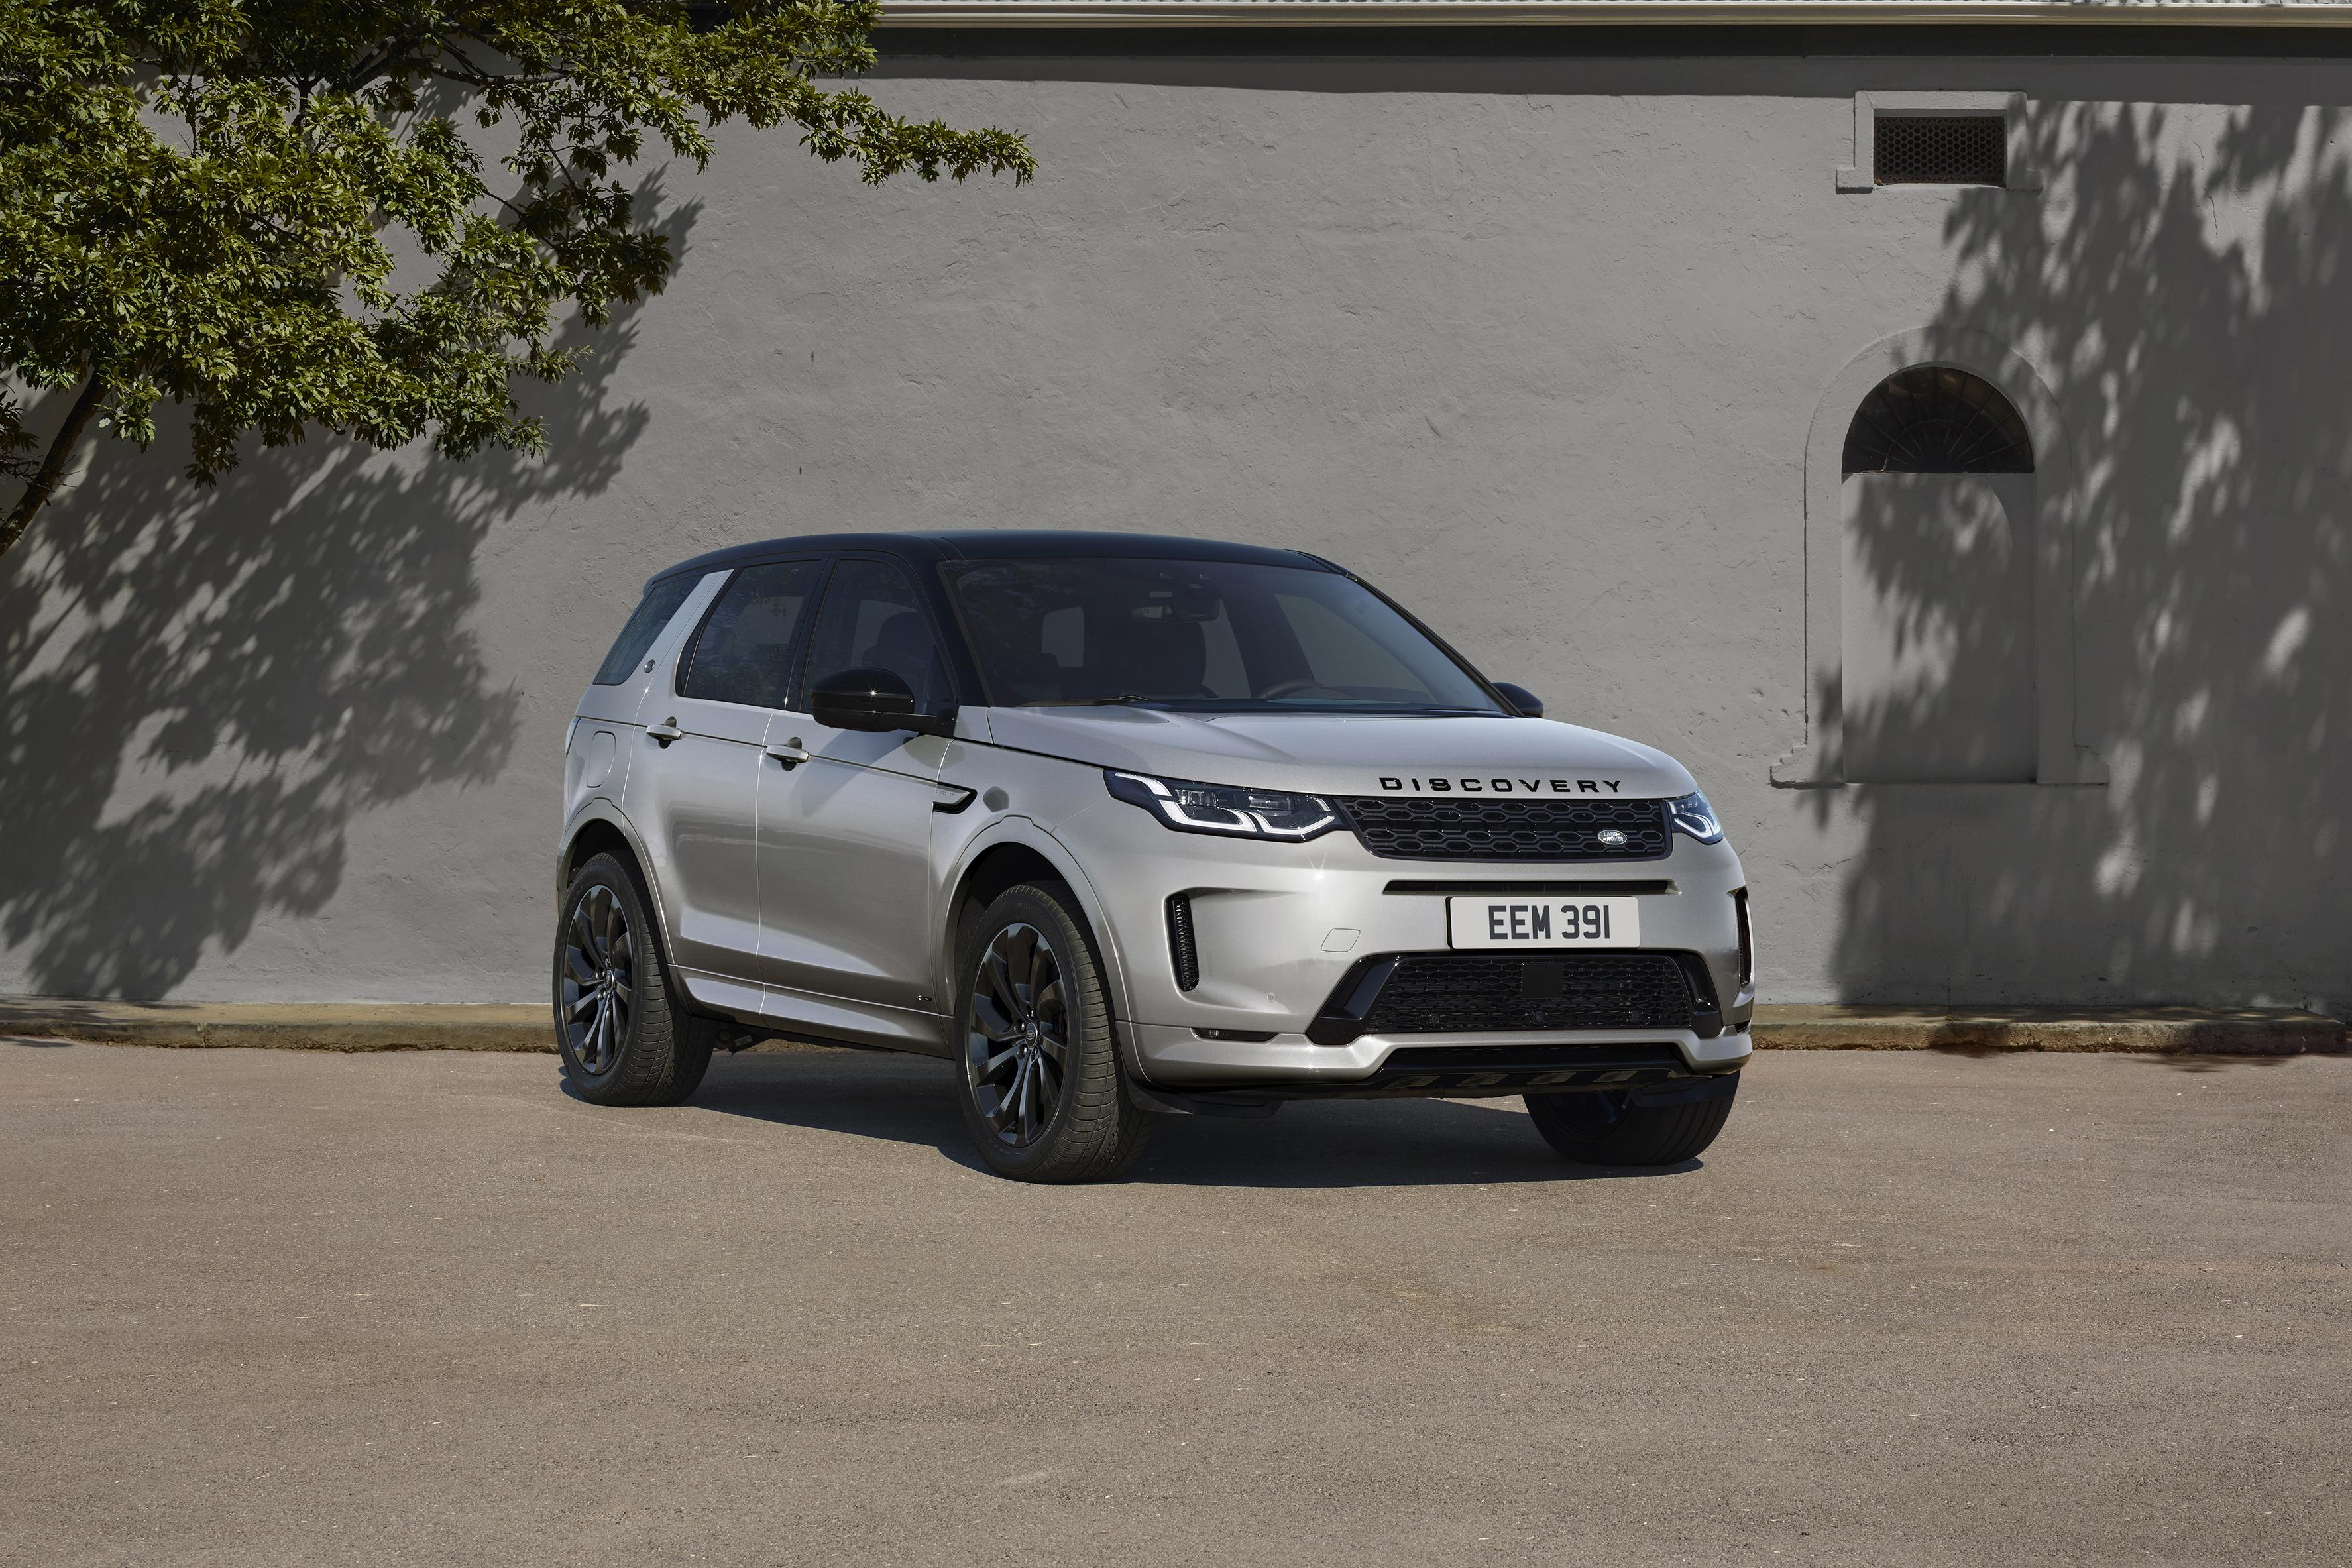 2022 Land Rover Discovery Sport price and specs